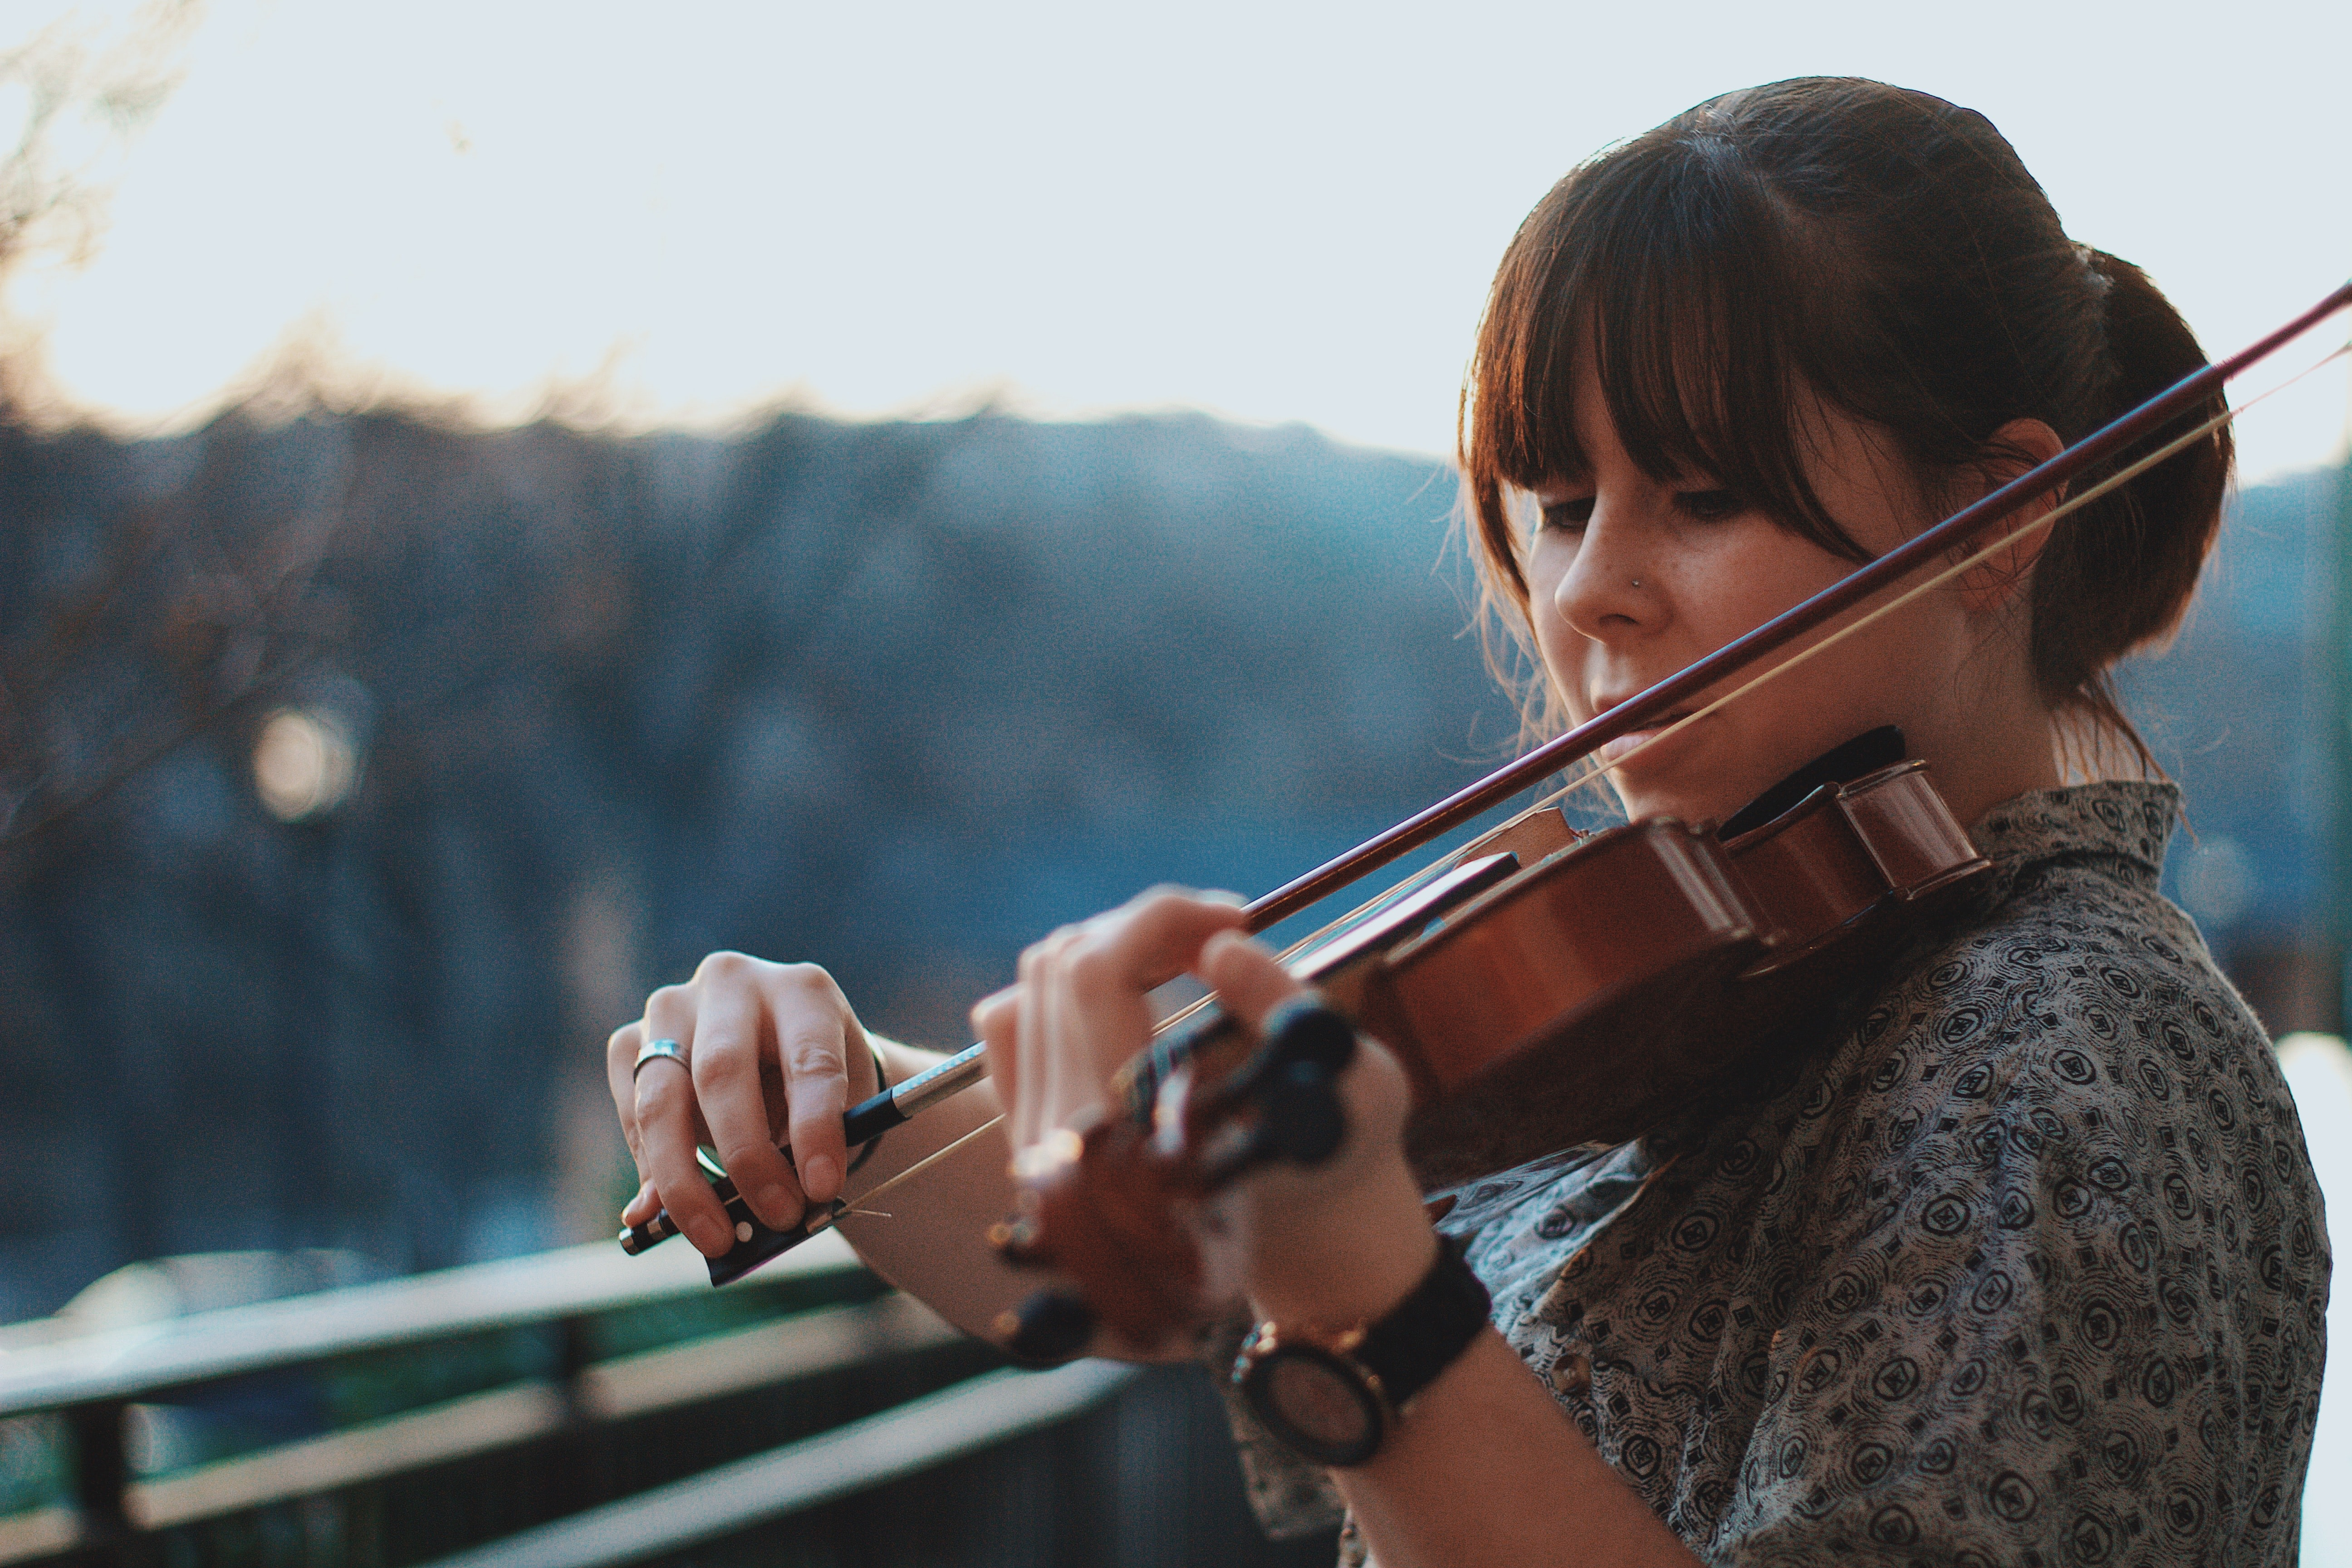 A woman playing a violin outdoors